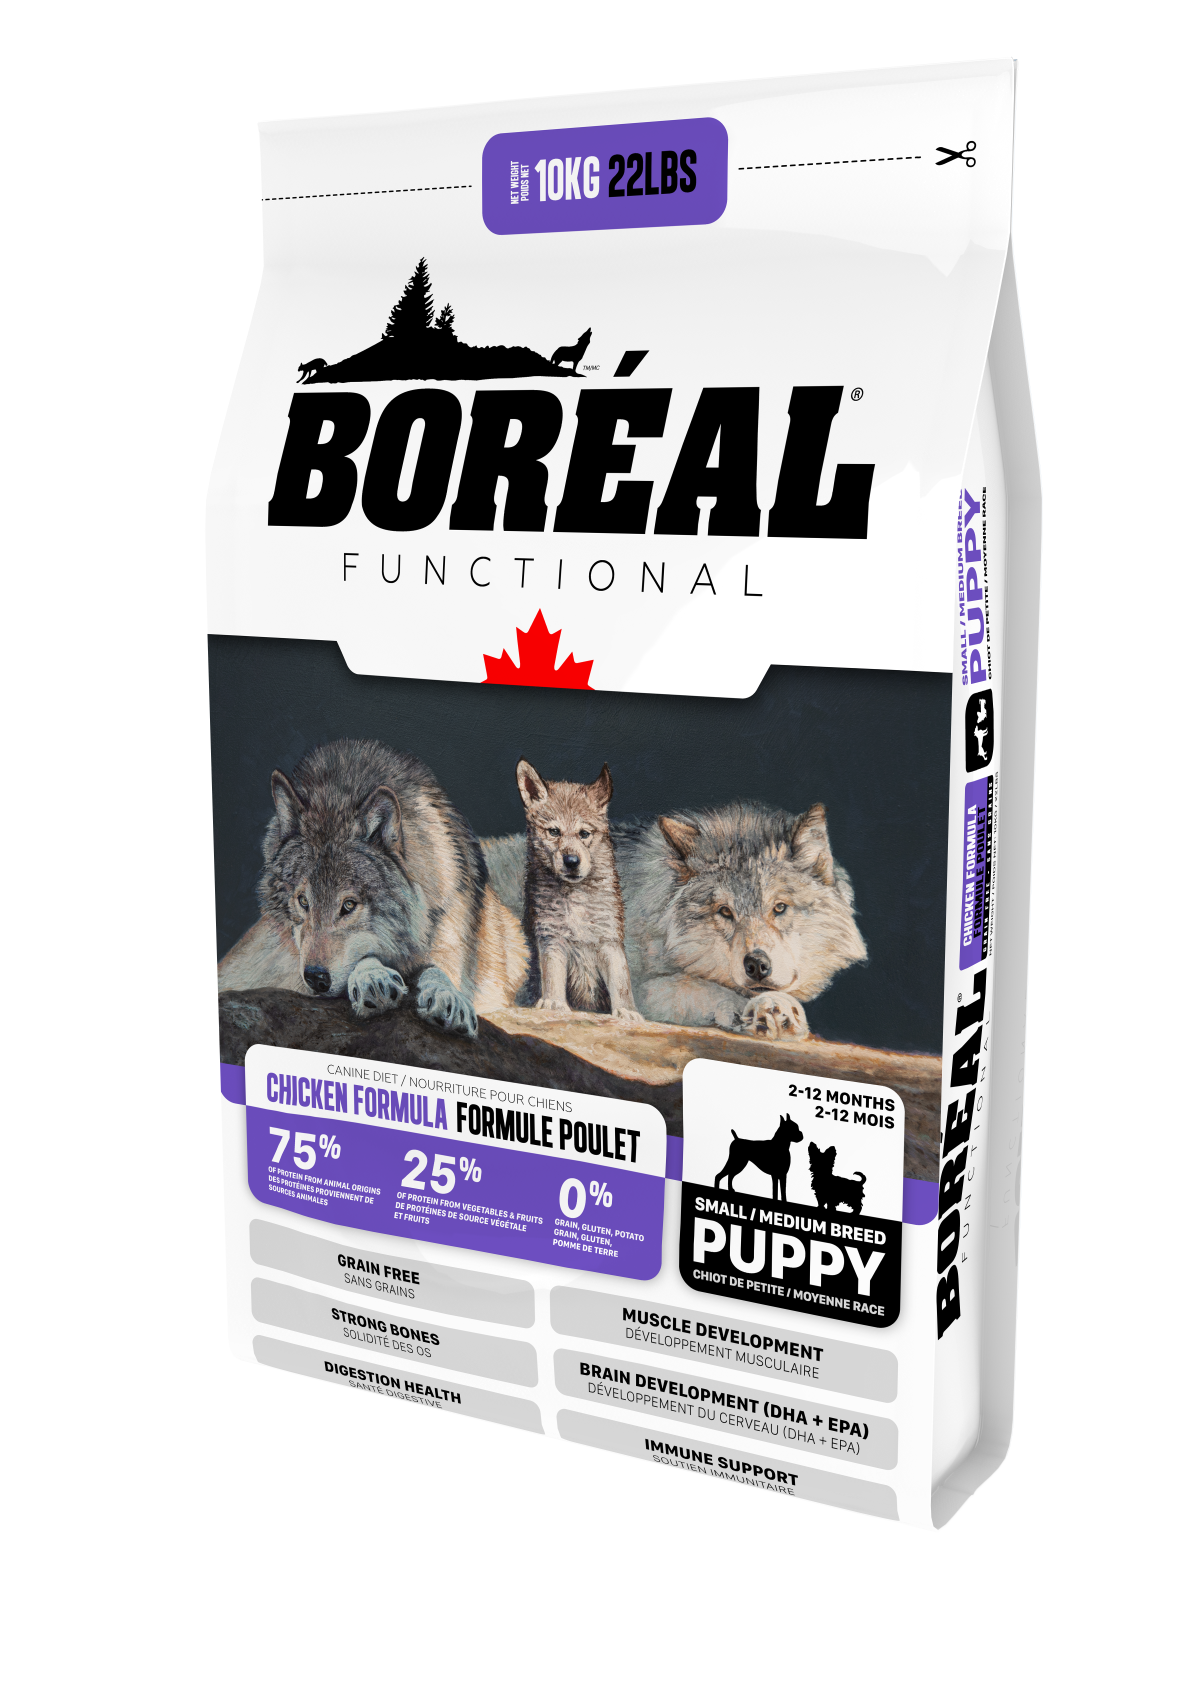 Functional Small and Medium Breed Puppy